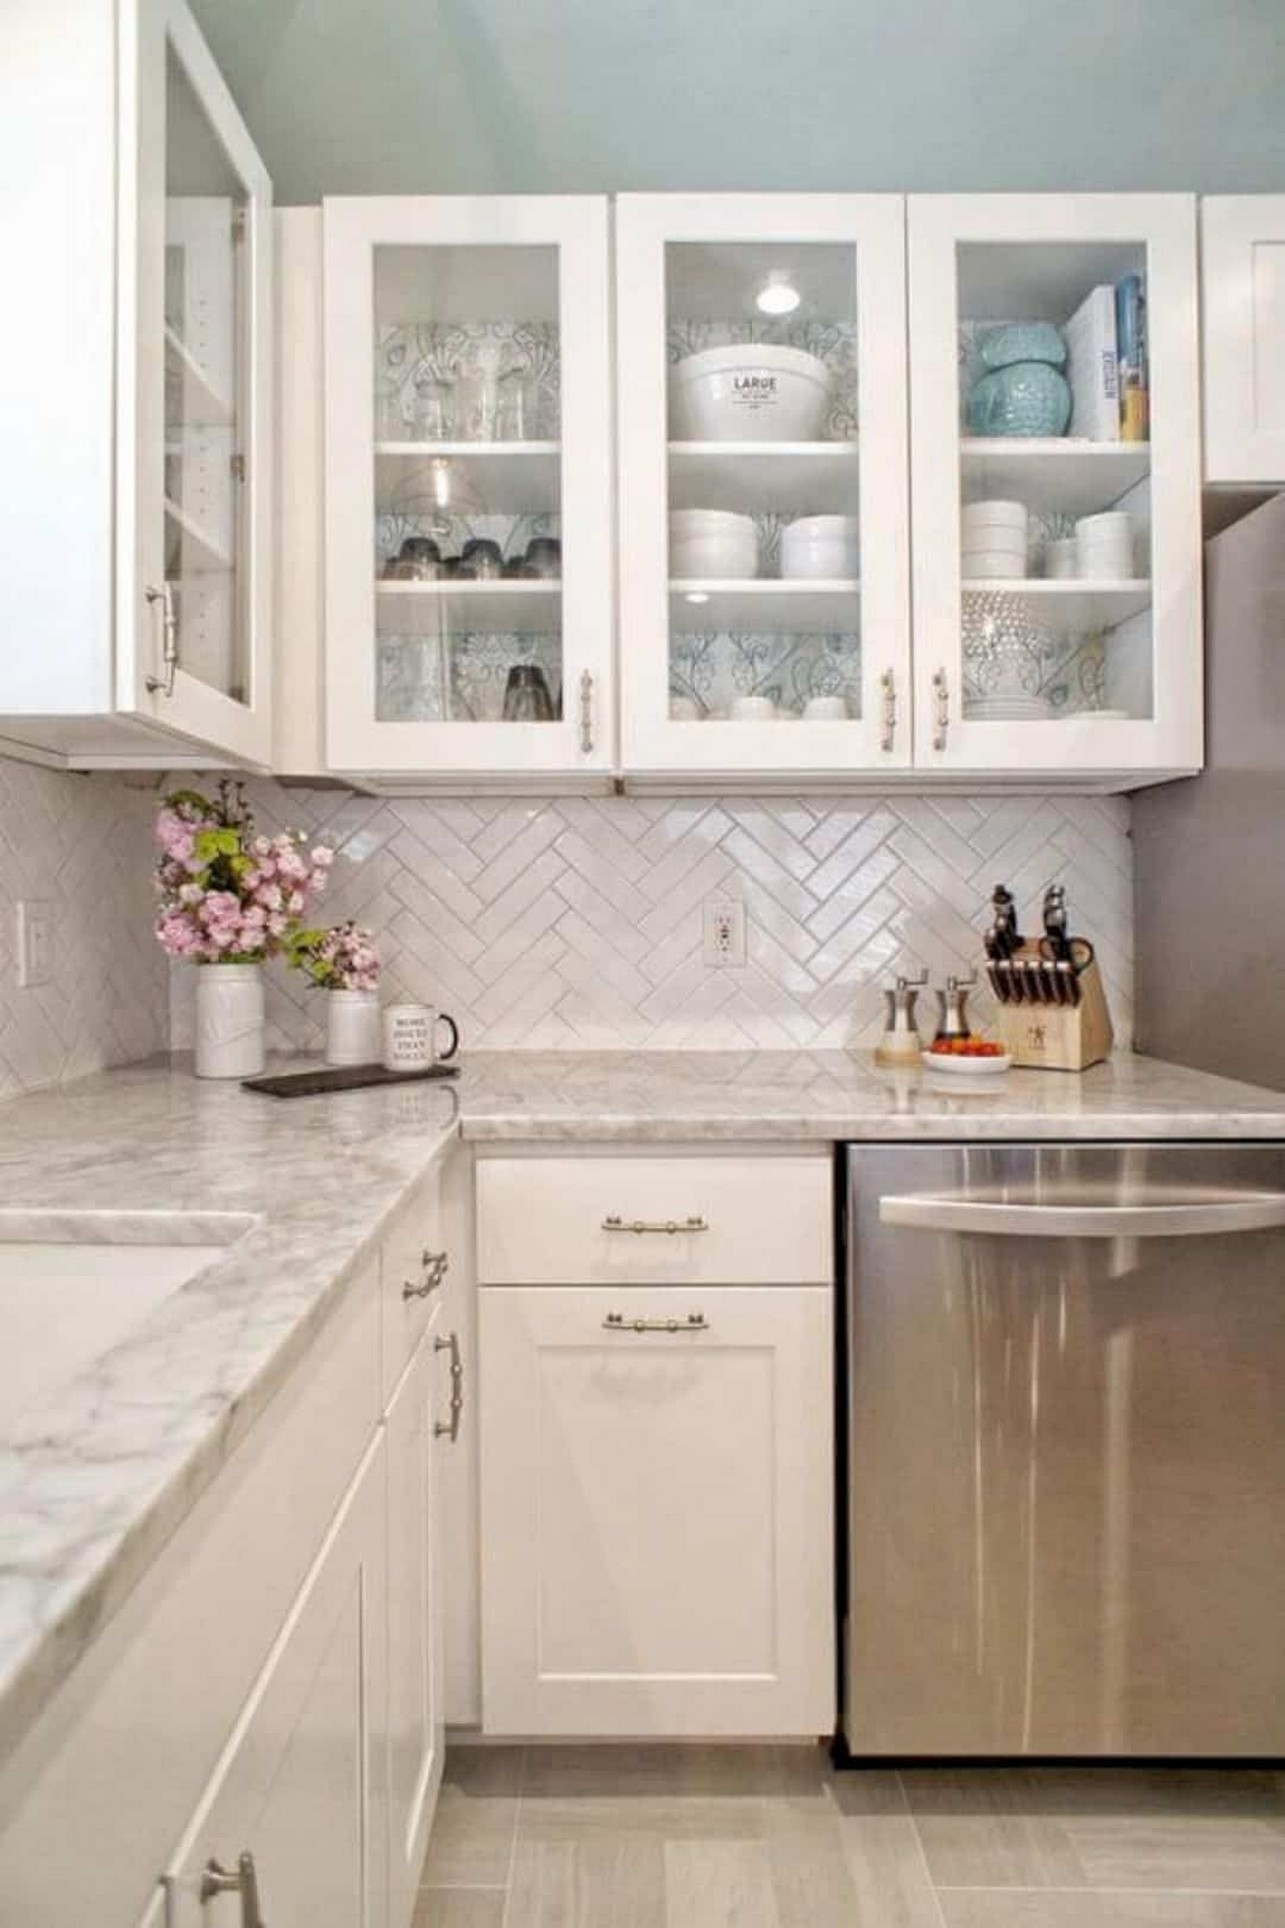 86 Some Small Kitchen Ideas To Help You Do Up Your Kitchen 35